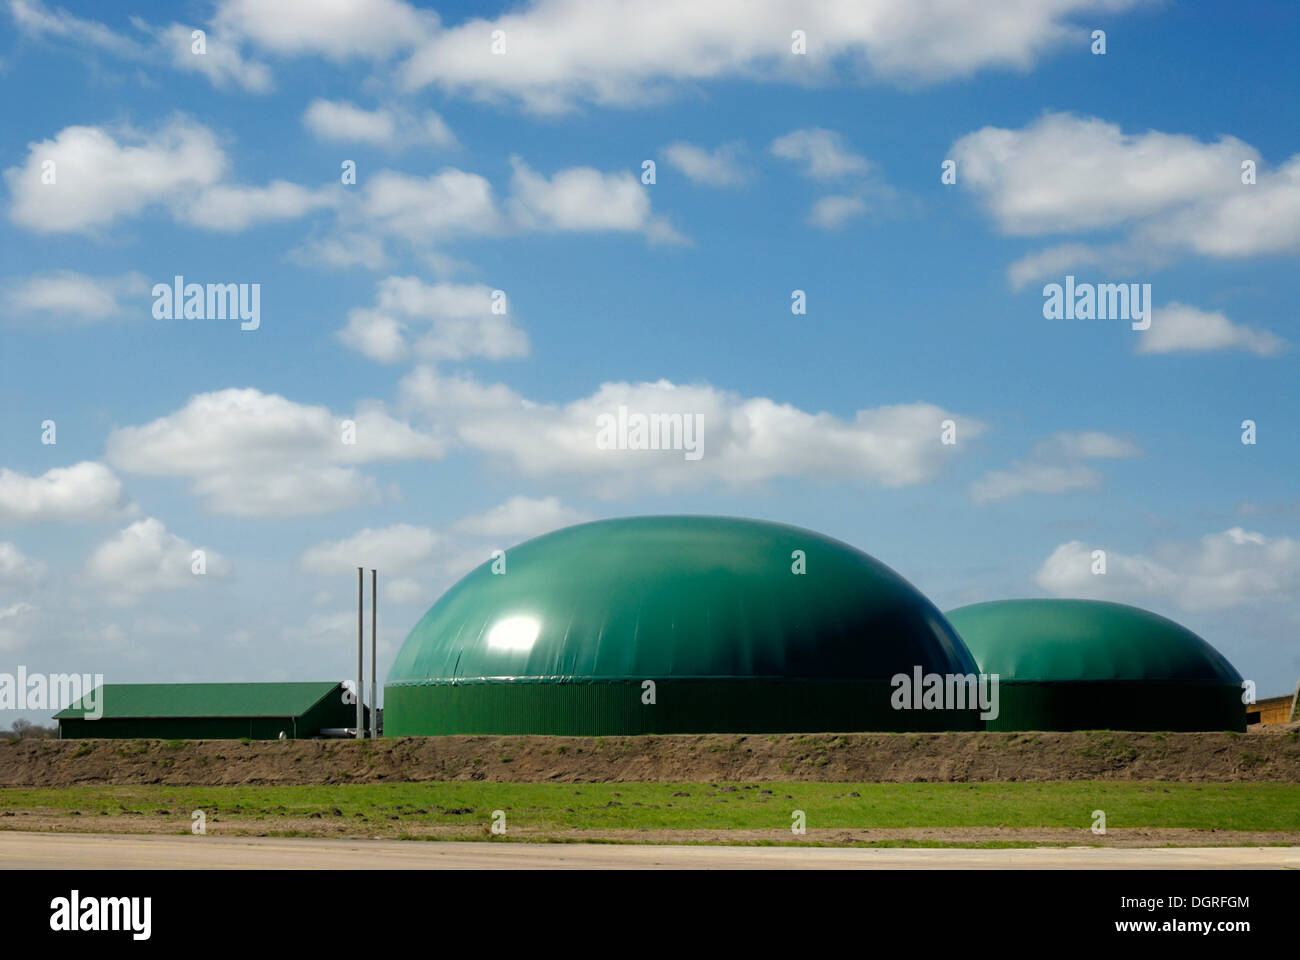 Agricultural biogas plant, biomass power plant with cogeneration unit, CHP, for electricity and heat production - Stock Image